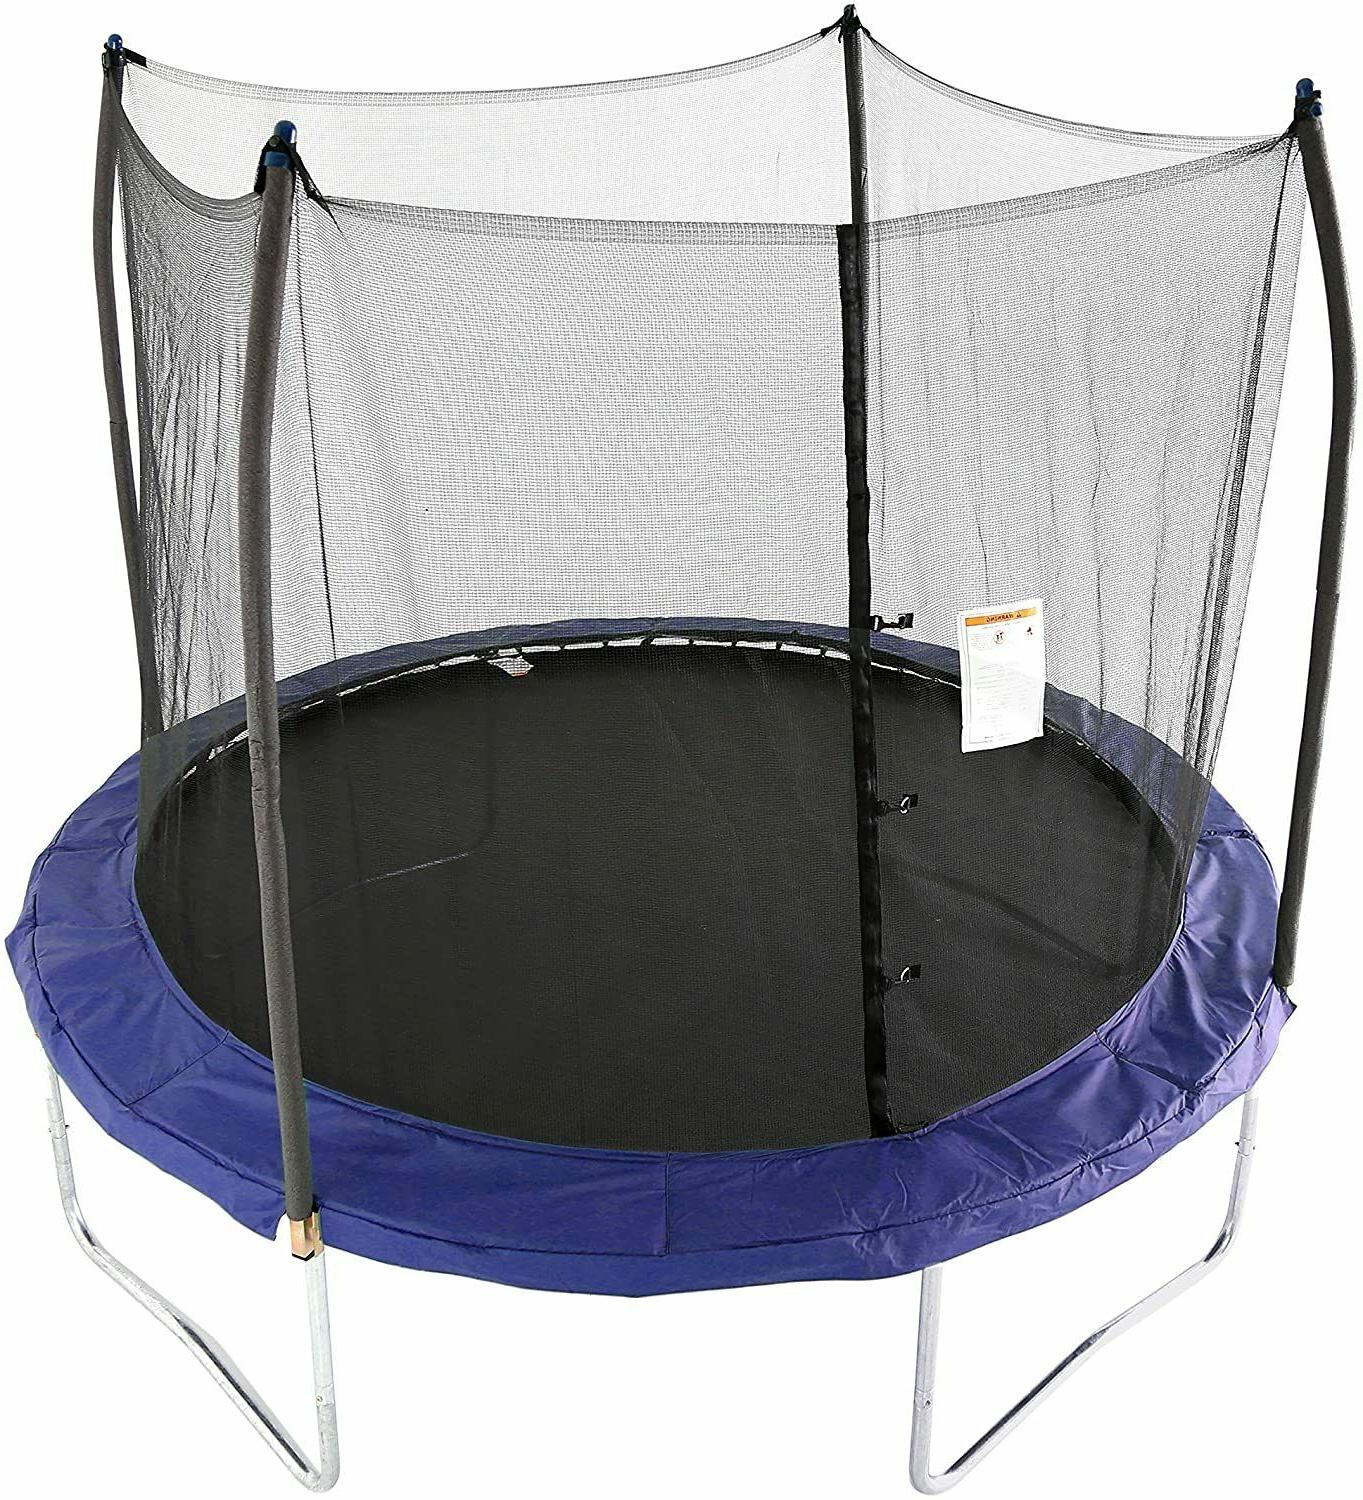 trampolines 10 foot round trampoline and enclosure